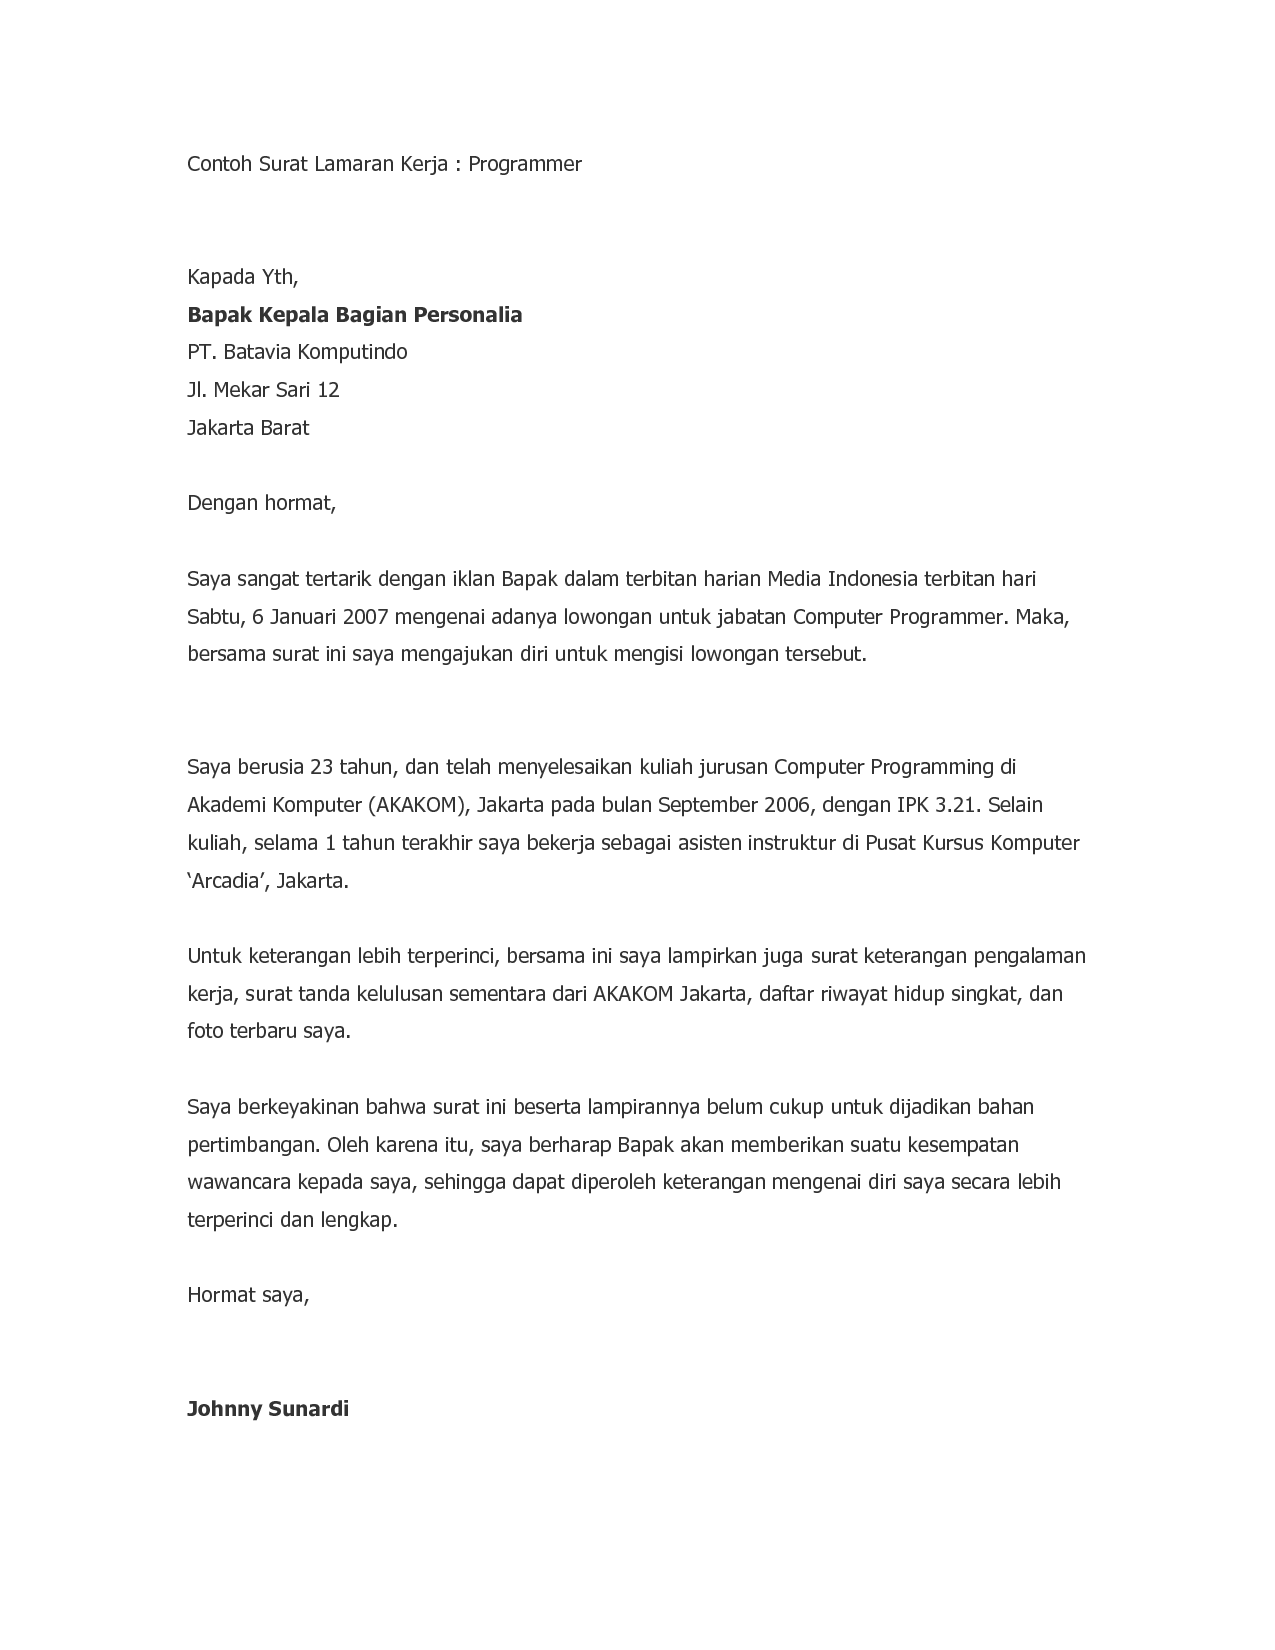 application letter indonesia personal essay for college best ever essays original